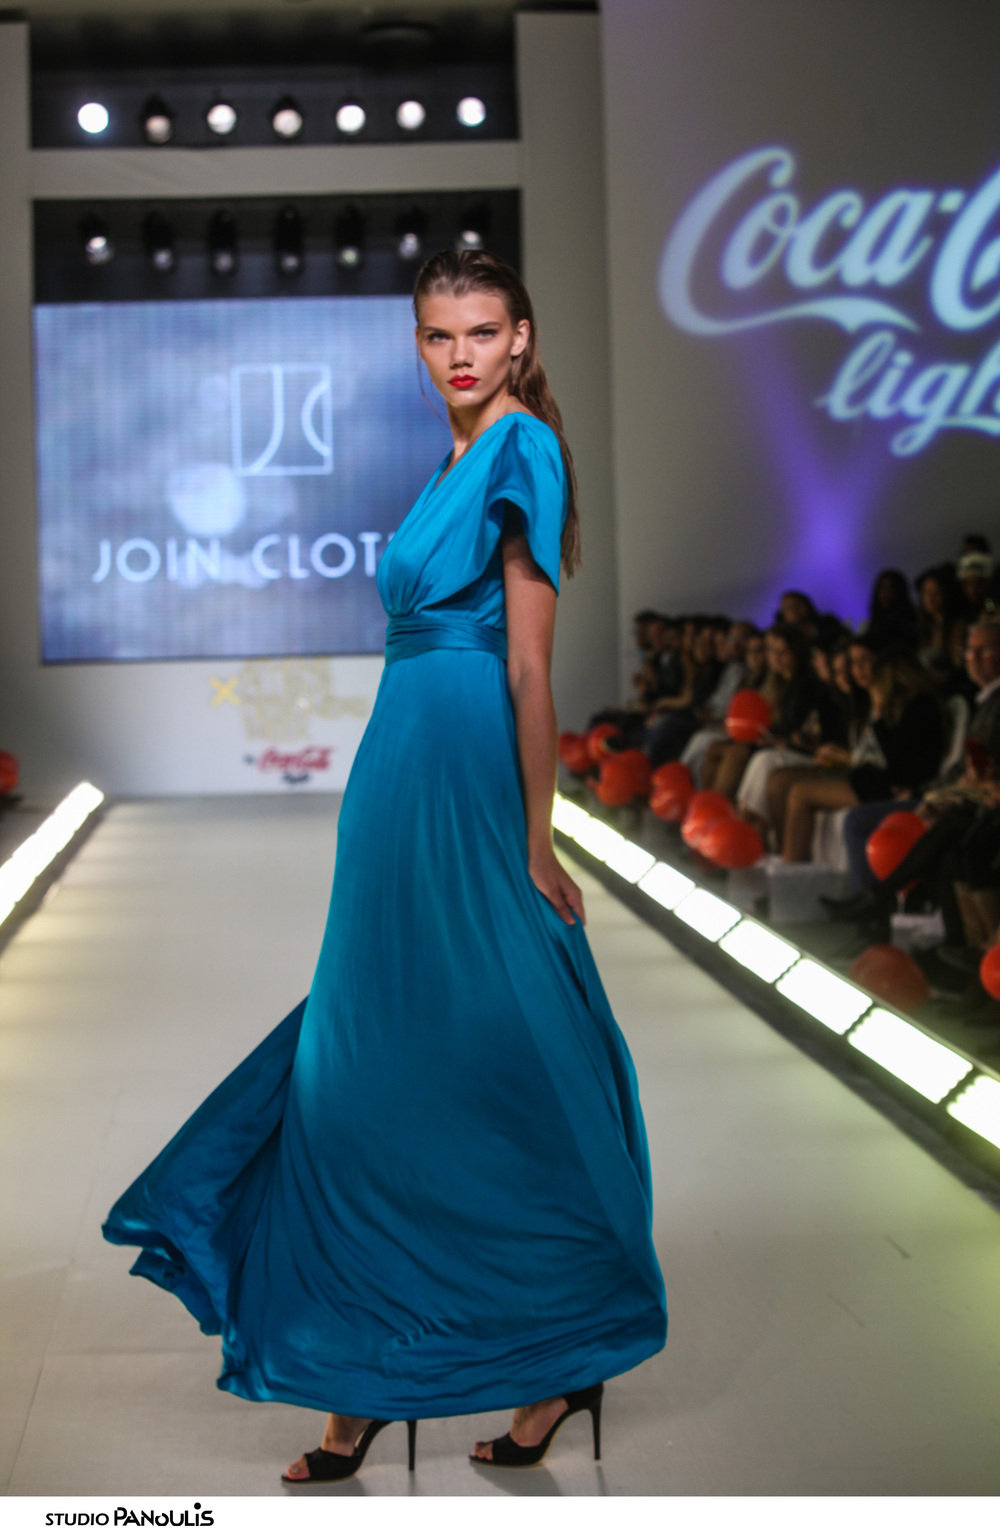 JOIN CLOTHES/Catwalk